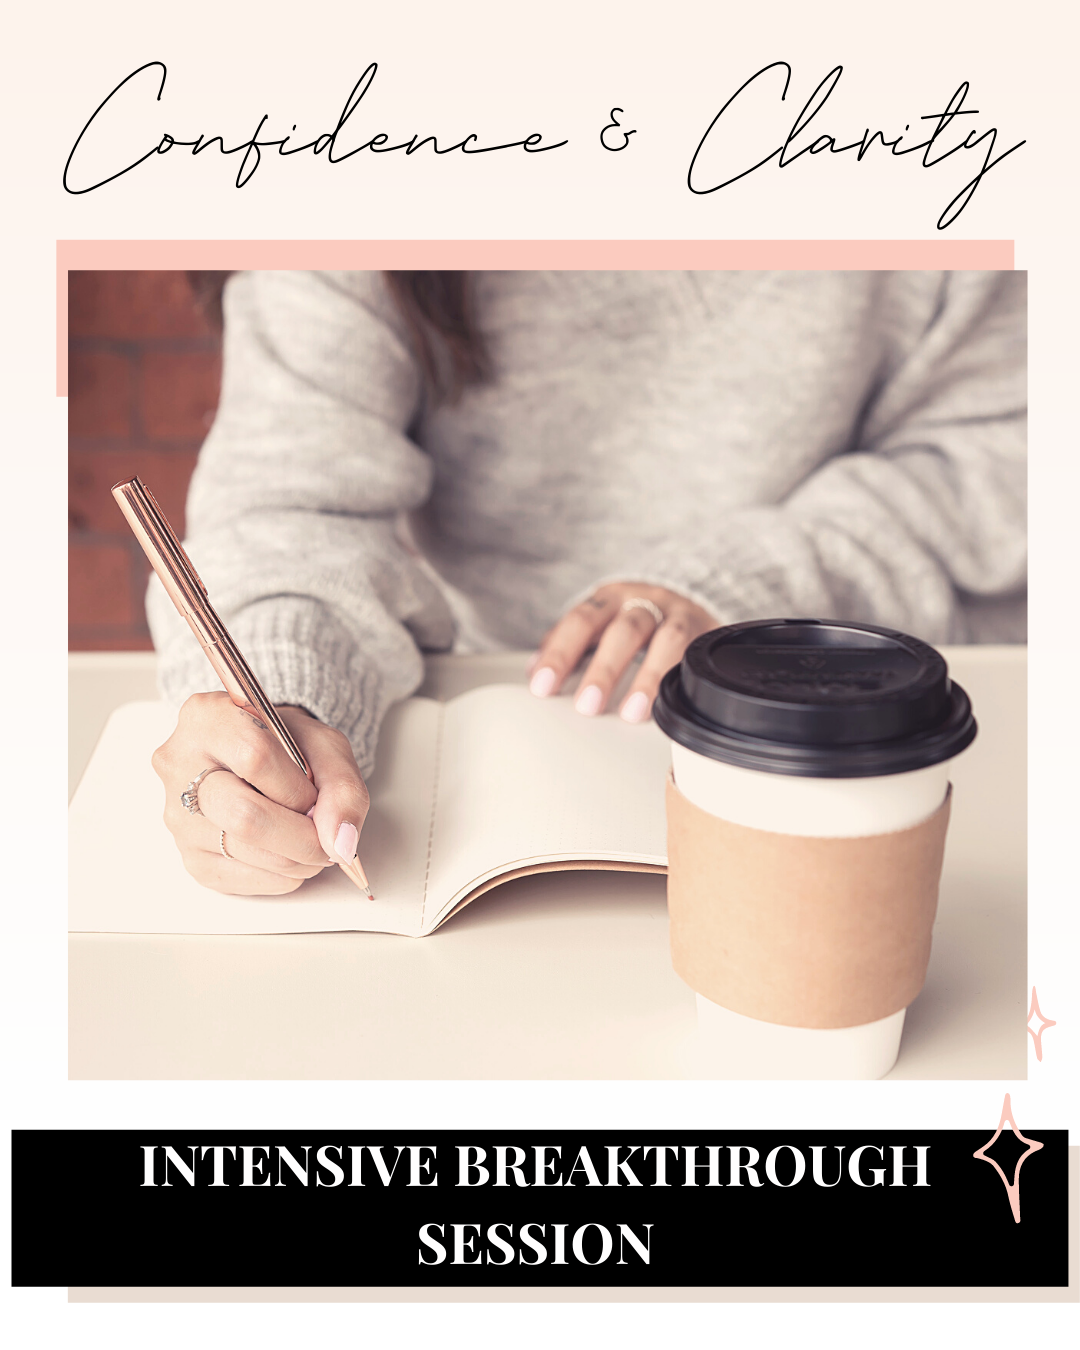 Confidence & Clarity Breakthrough Session